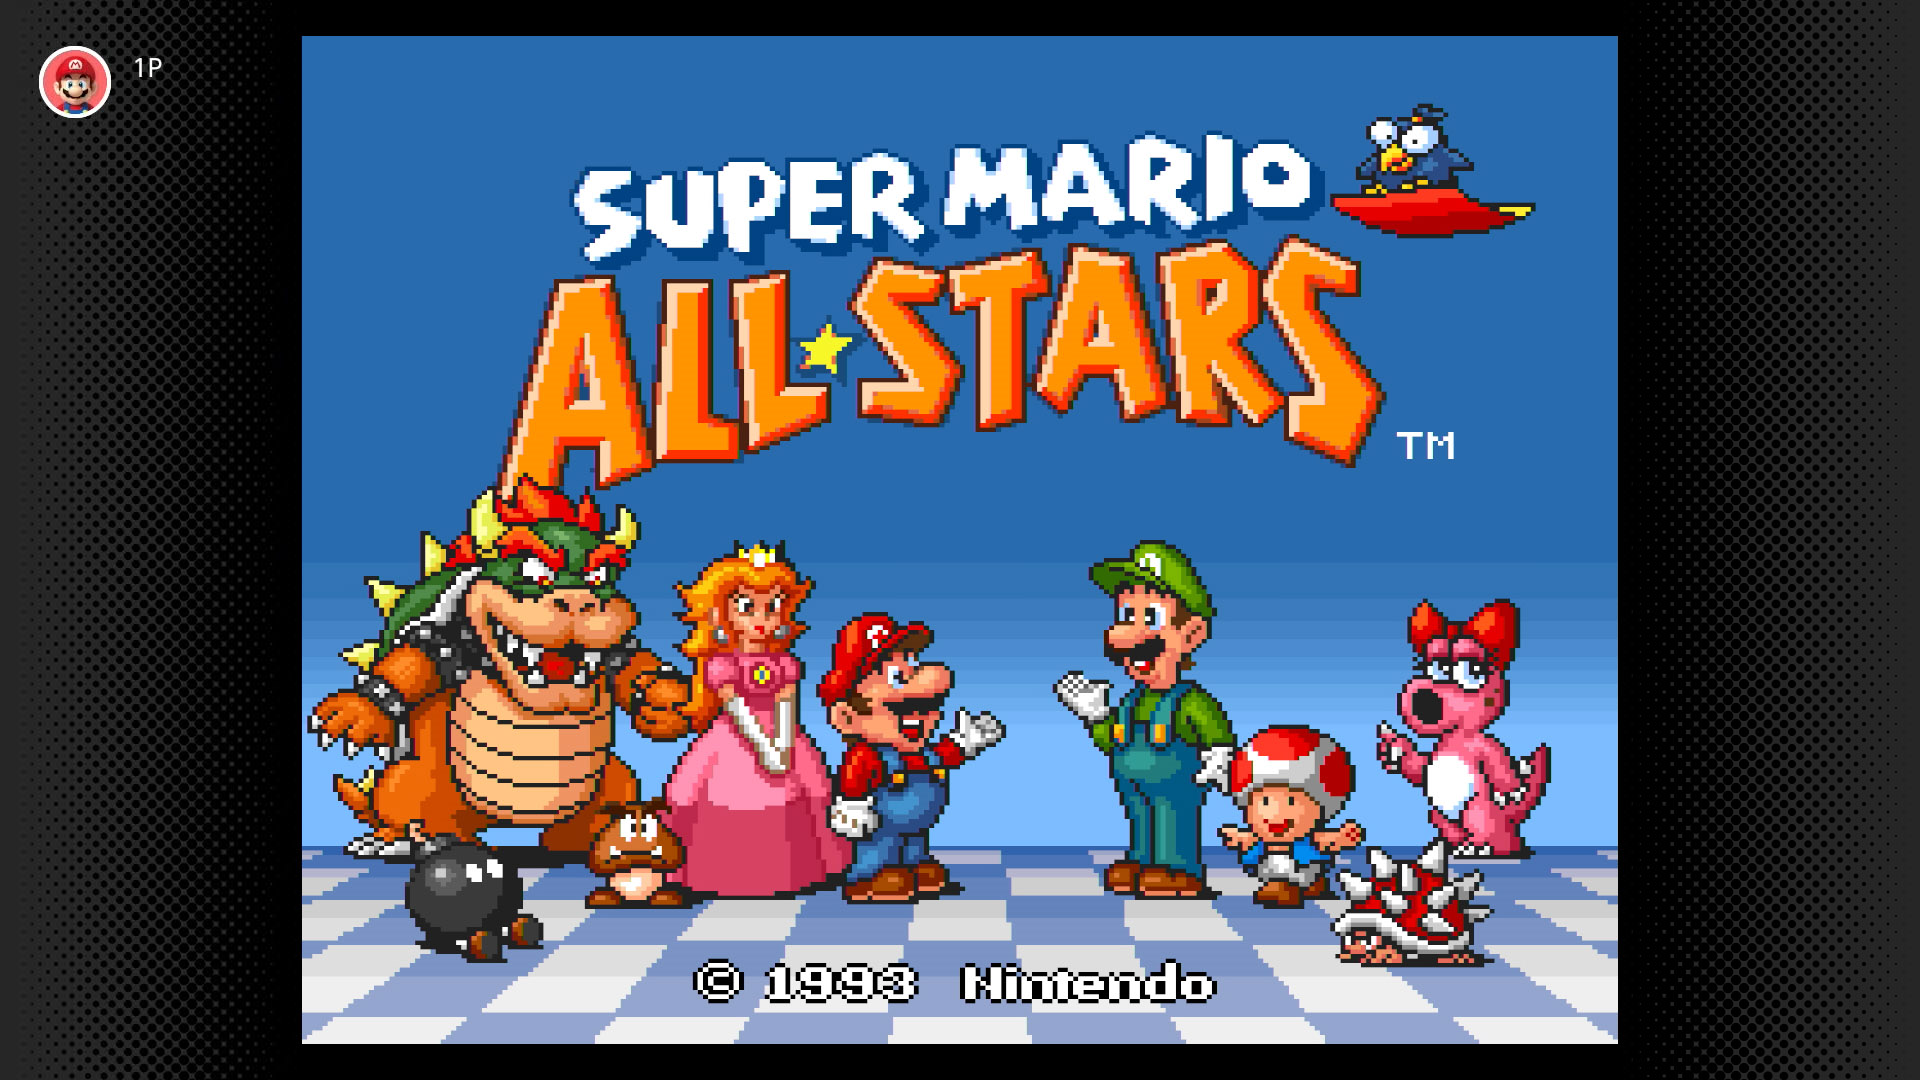 Super-Mario-All-Stars-SNES_09-03-20.jpg